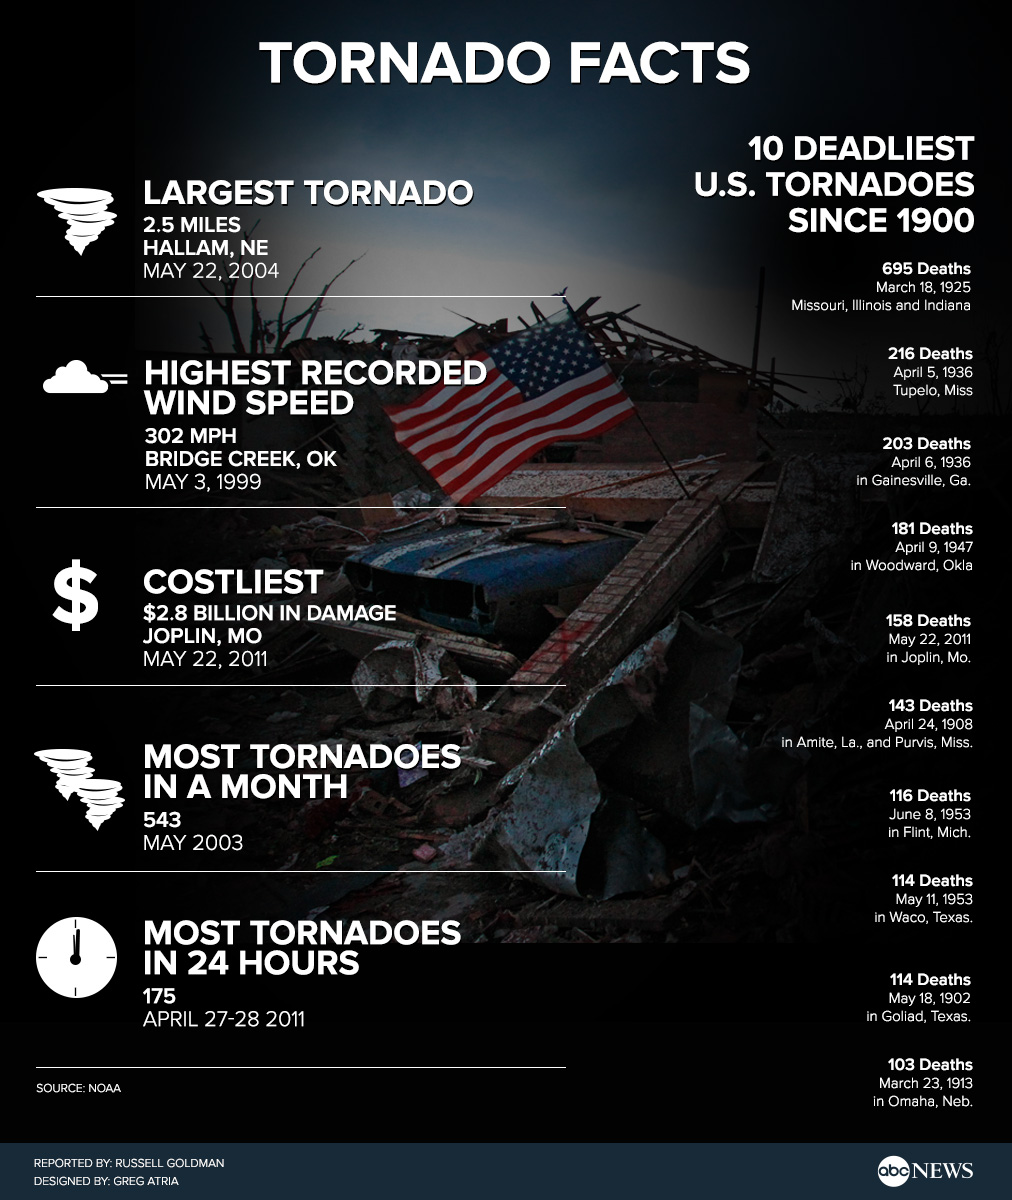 facts about tornadoes Tornadoes or twisters are the fastest winds on earth and can whirl up to 300 miles per hour read on for more interesting facts on tornadoes.